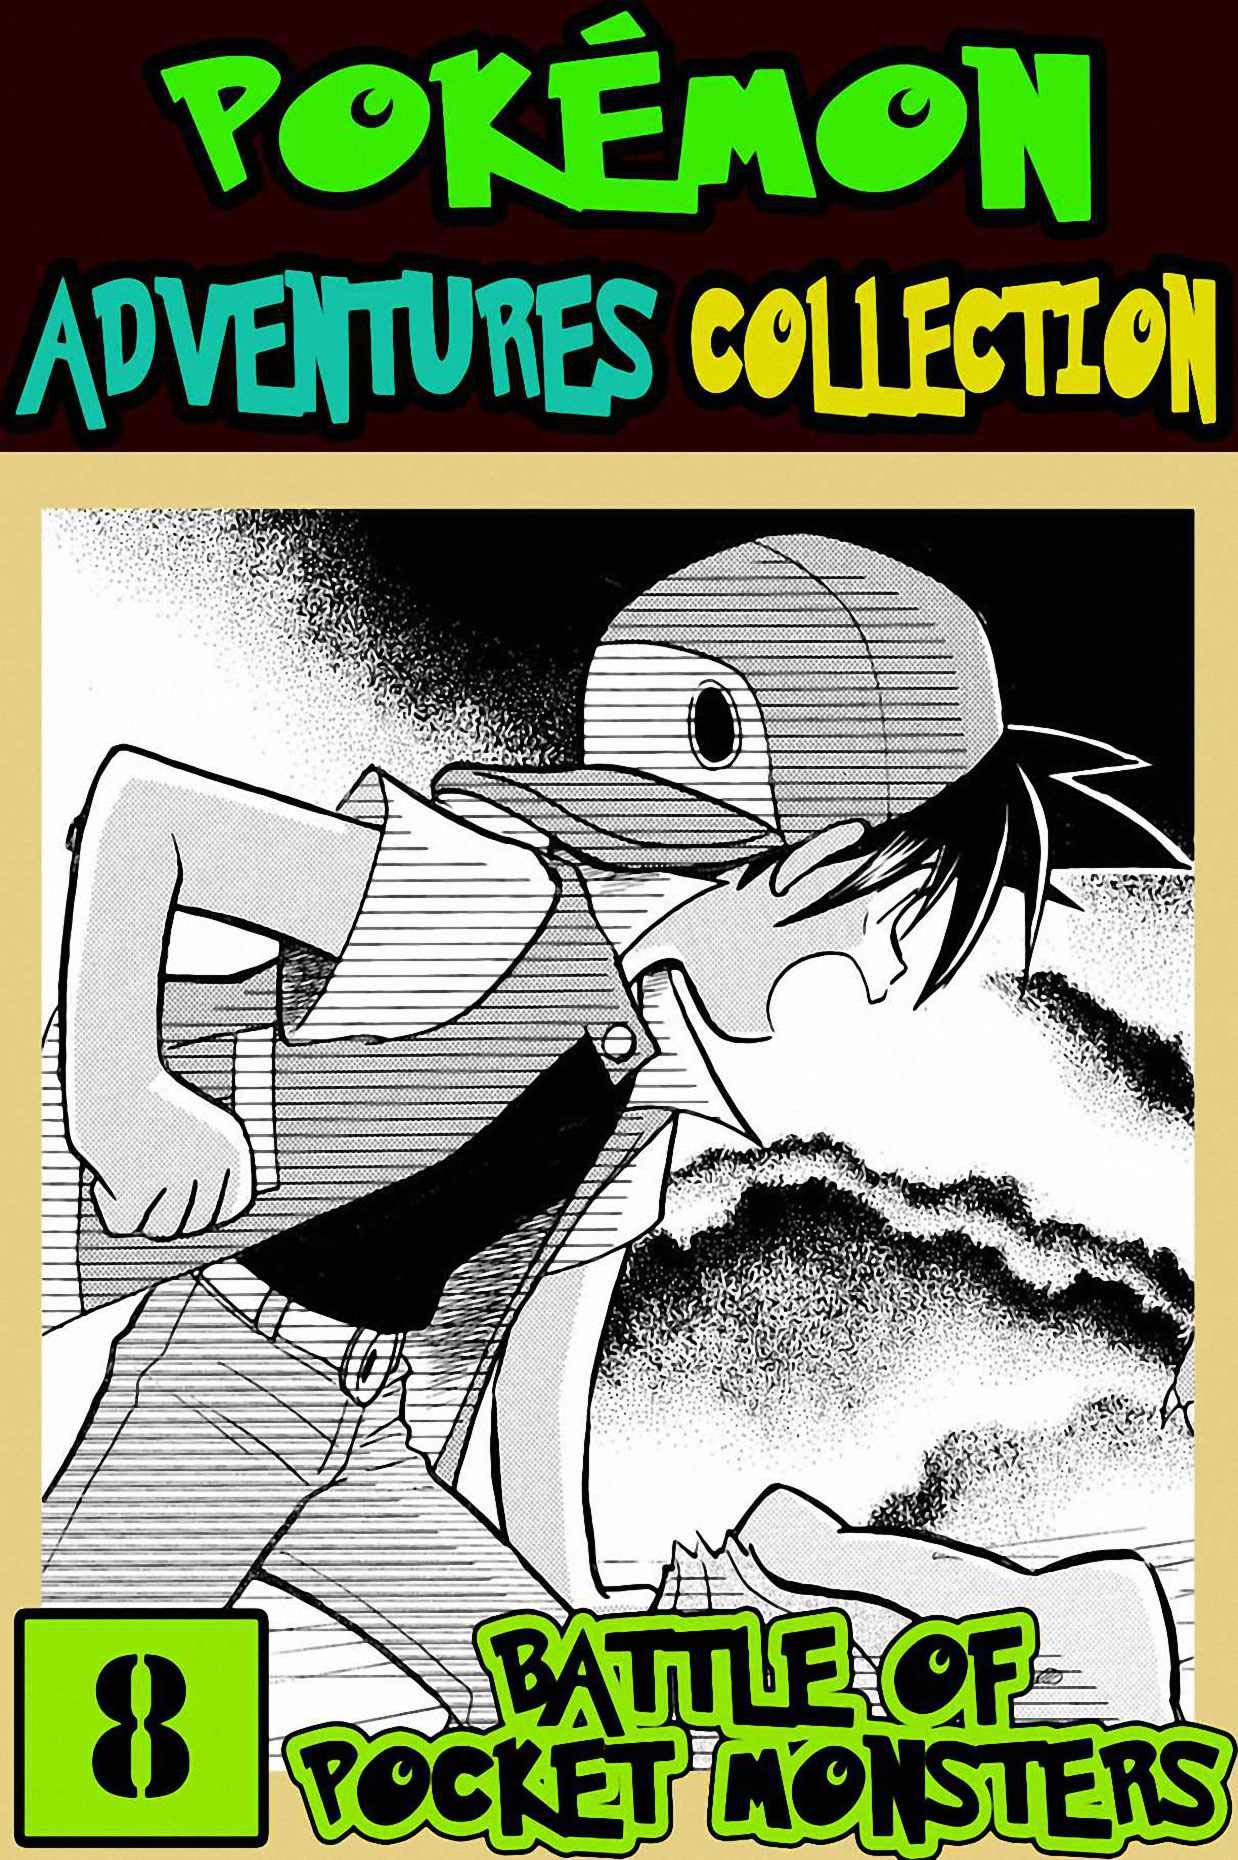 Battle Pocket: Collection 8 - Pokemon Manga Adventures Graphic Novel For Boys, Girls, Kids